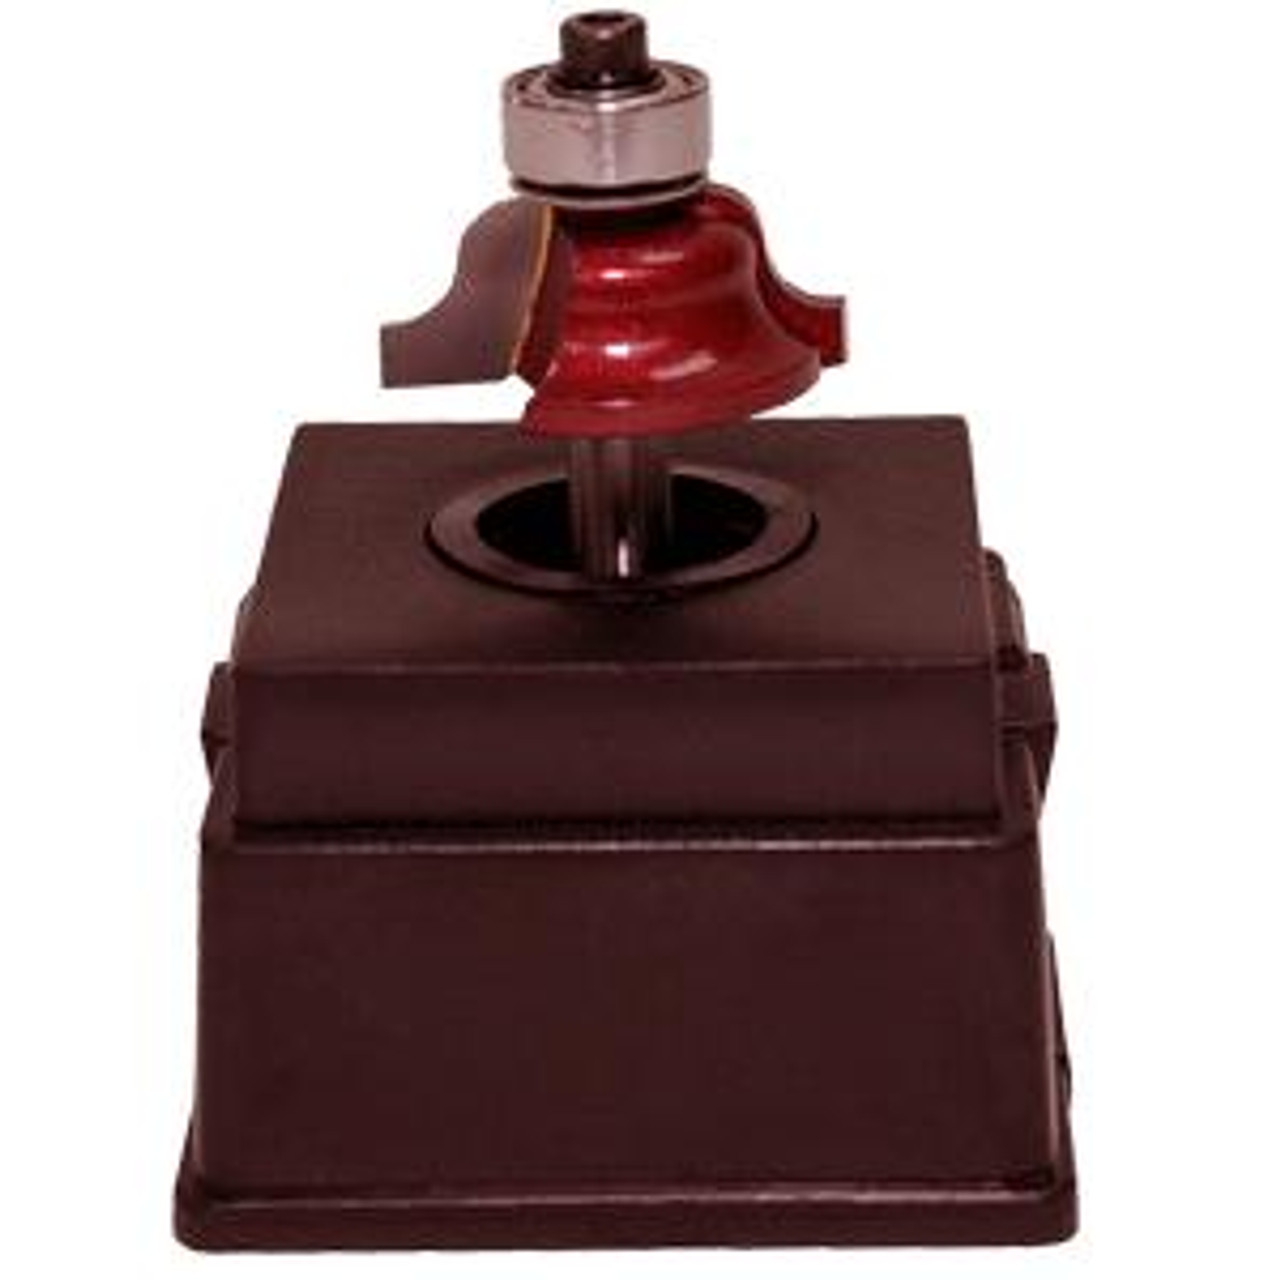 Cherry Tree Toys Roman Ogee Router Bit with Bearing